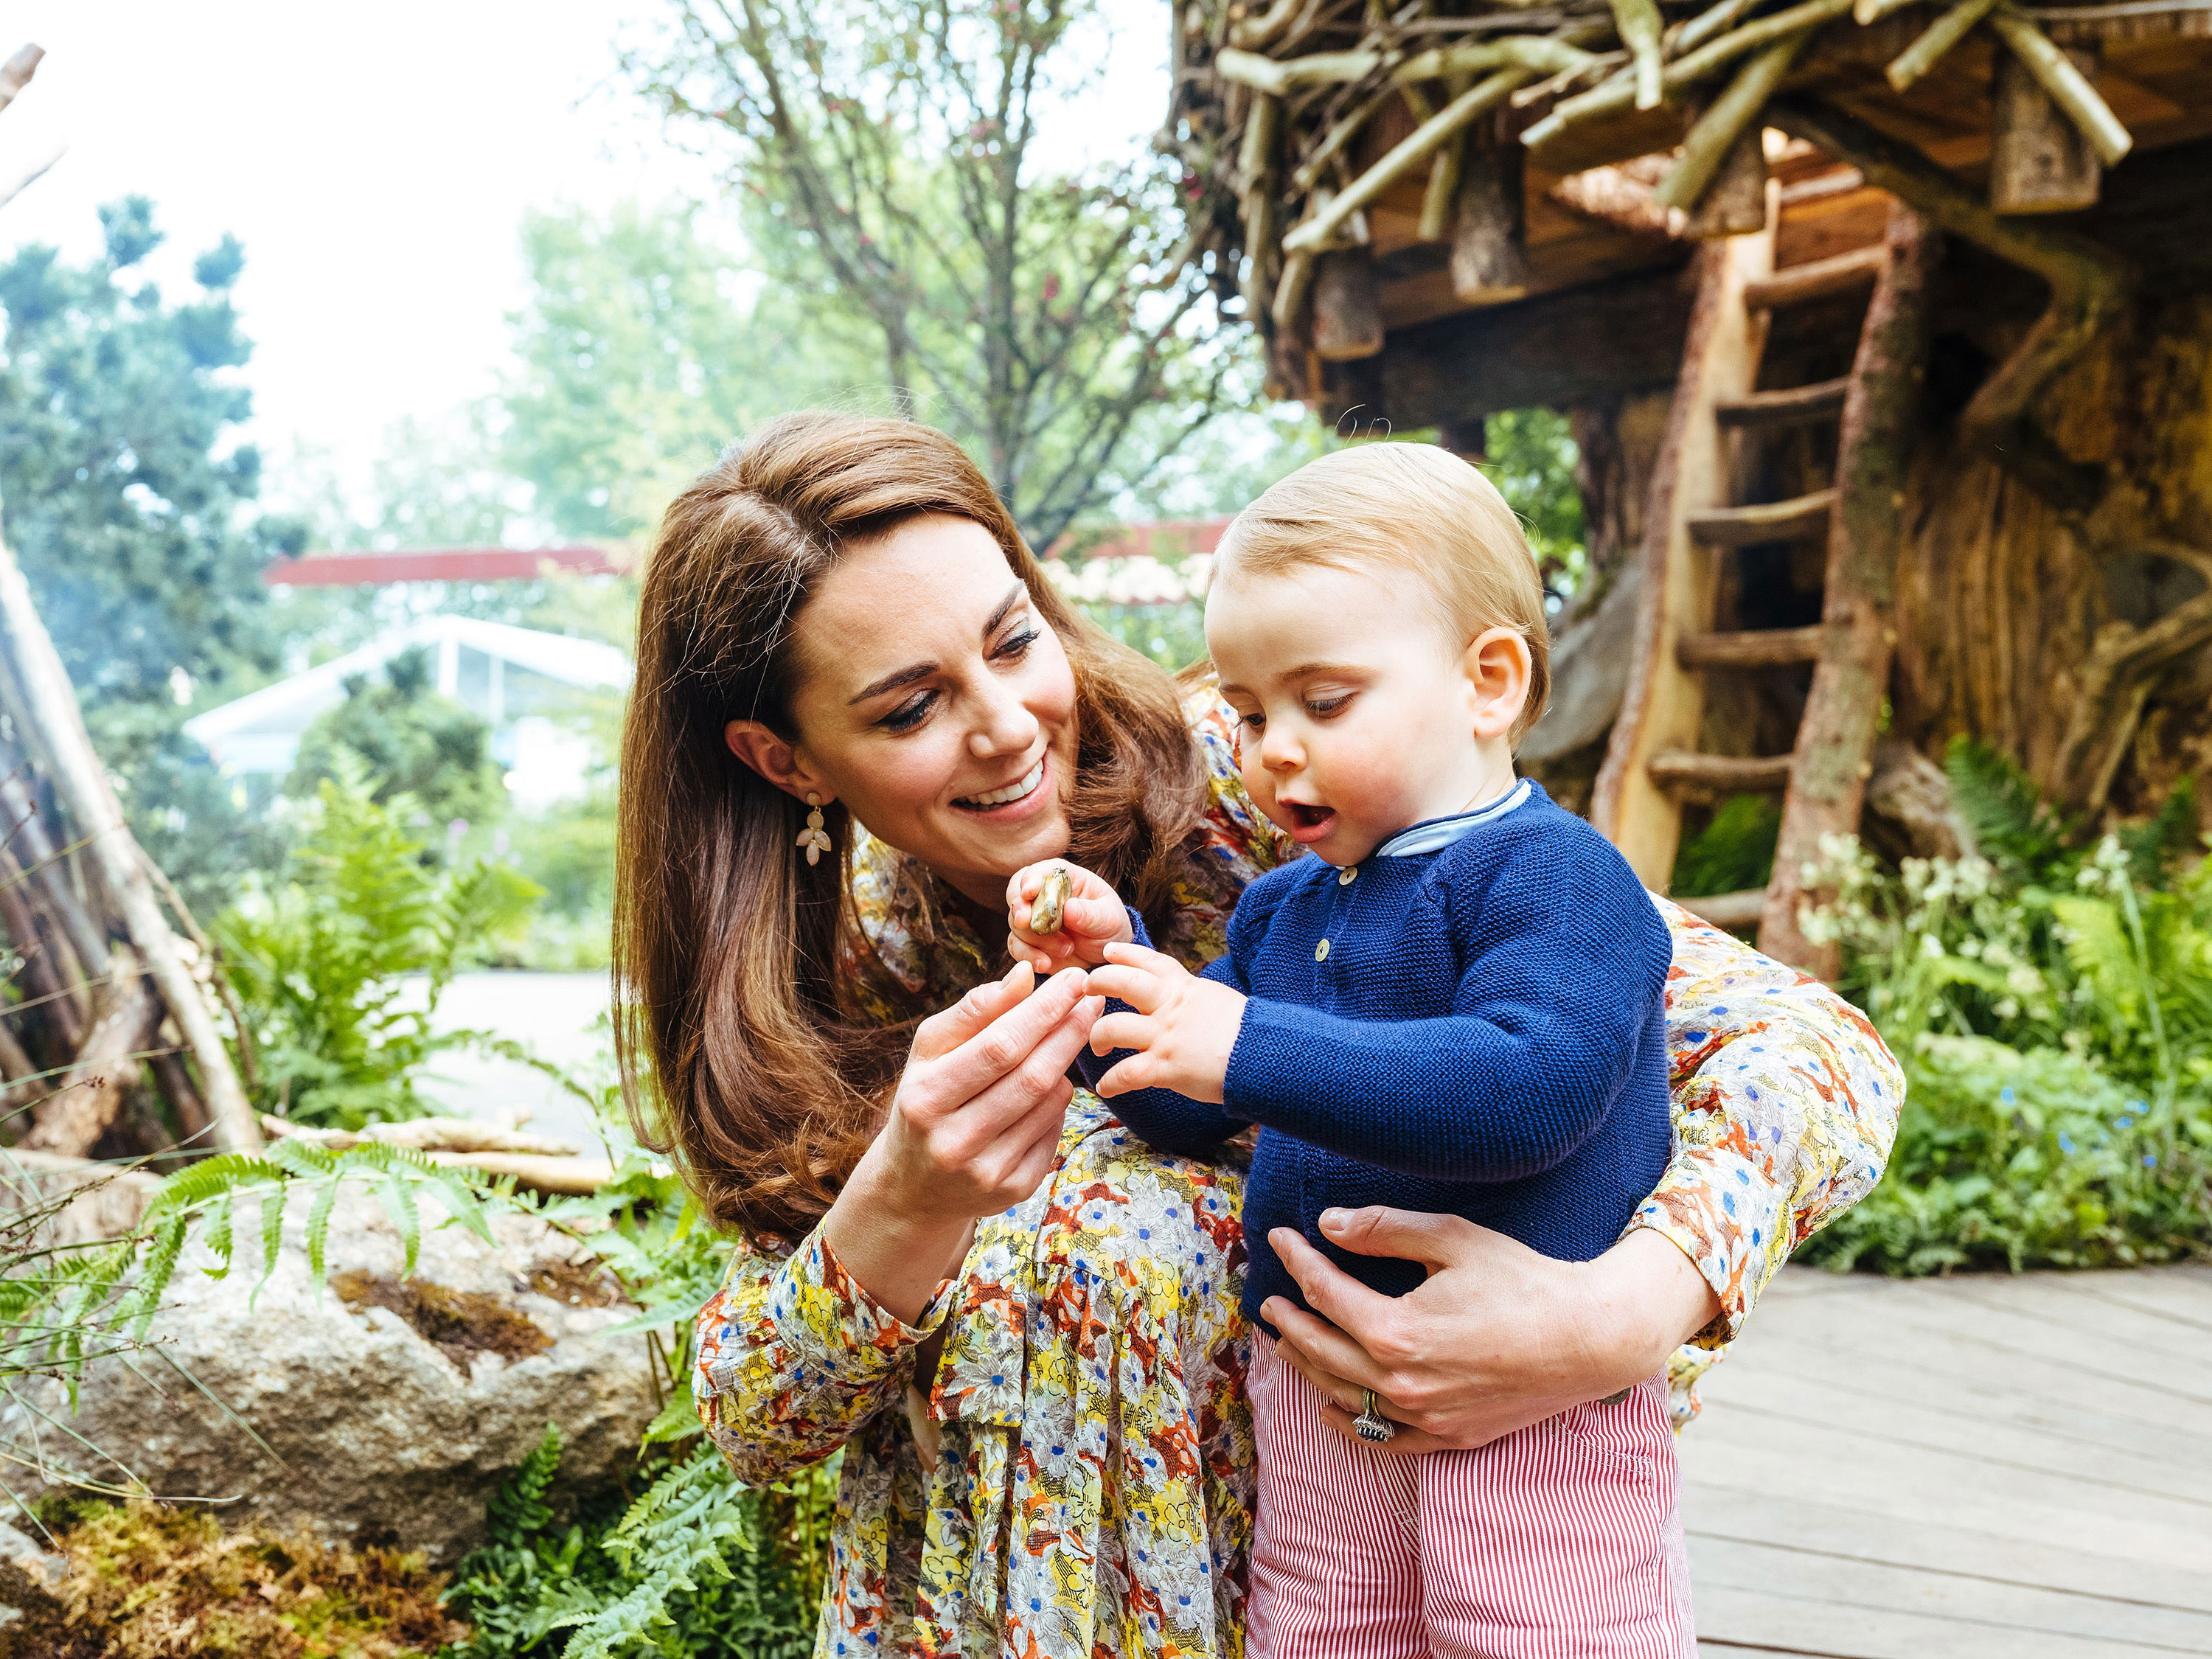 Prince William, Duchess Kate and Kids Play in the Garden She Designed at Chelsea Flower Show - **STRICTLY EMBARGOED UNTIL 2230 BST SUNDAY MAY 19** The Duke and Duchess of Cambridge, Prince George, Princess Charlotte and Prince Louis visit the Adam White and Andree Davies co-designed 'Back to Nature' garden during build week ahead of the RHS Chelsea Flower Show, London, UK, on the 19th May 2019. Picture by Matt Porteous/WPA-Pool **STRICTLY […]